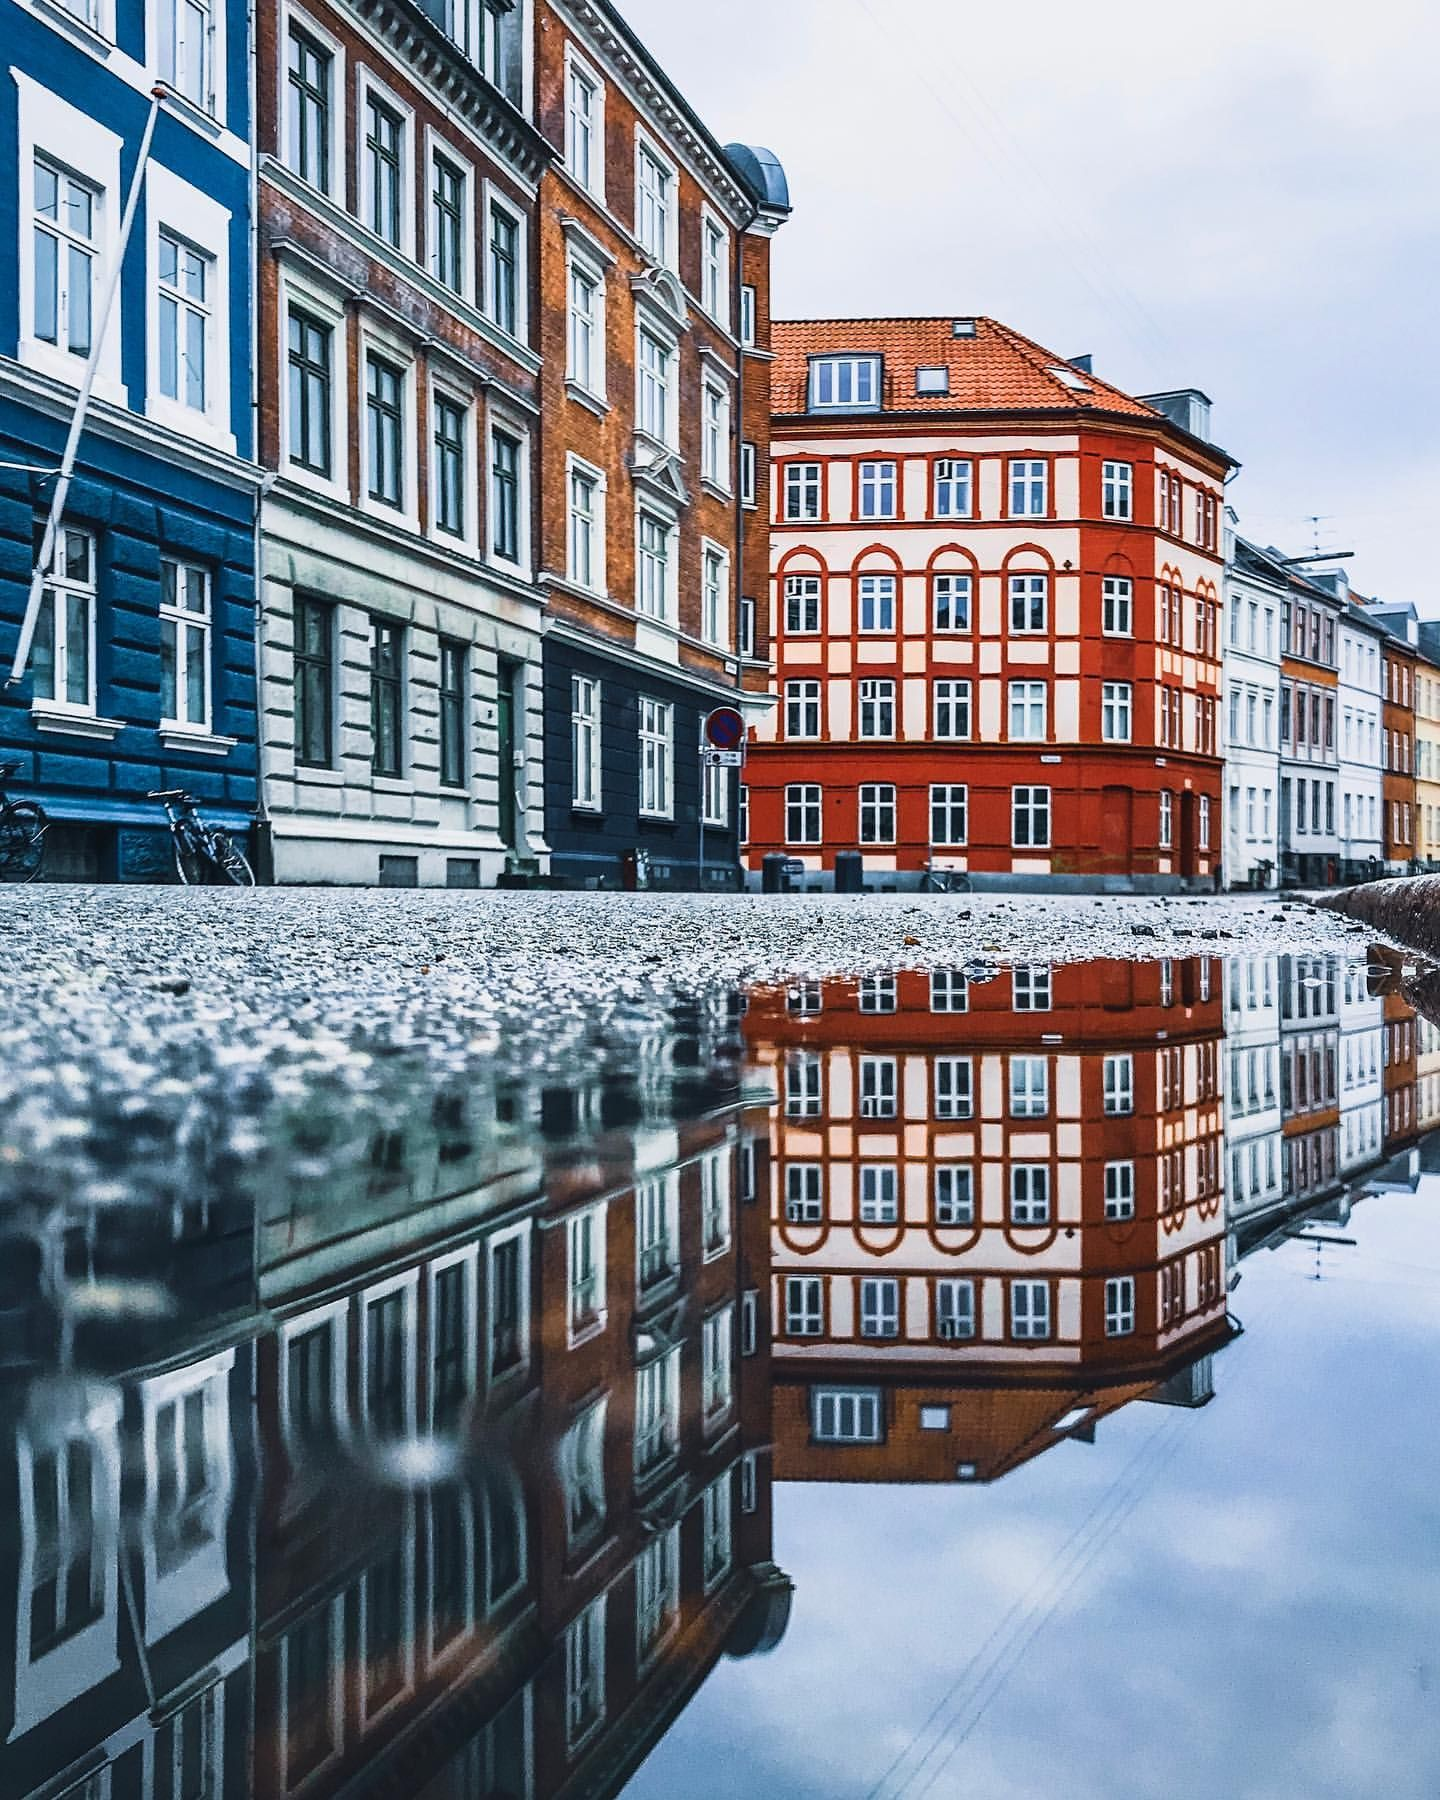 Colorful Architecture And Street Photography In Denmark By Adam Brosbol Street Photography Denmark Architecture Photo